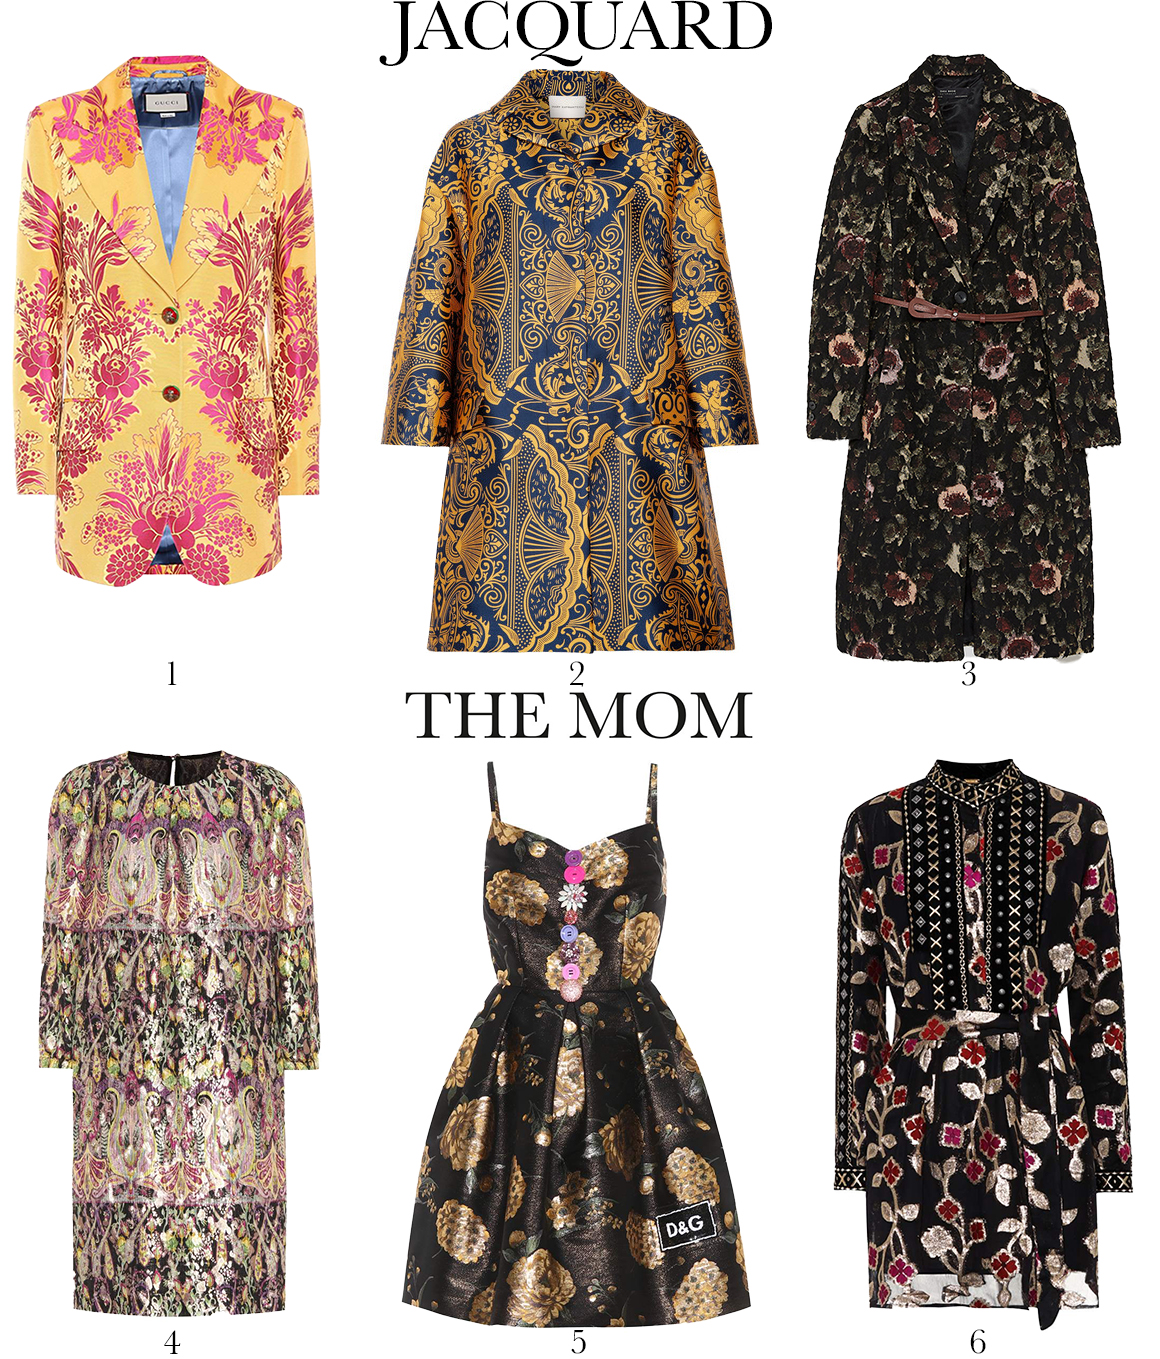 the-mom-jacquard-gucci